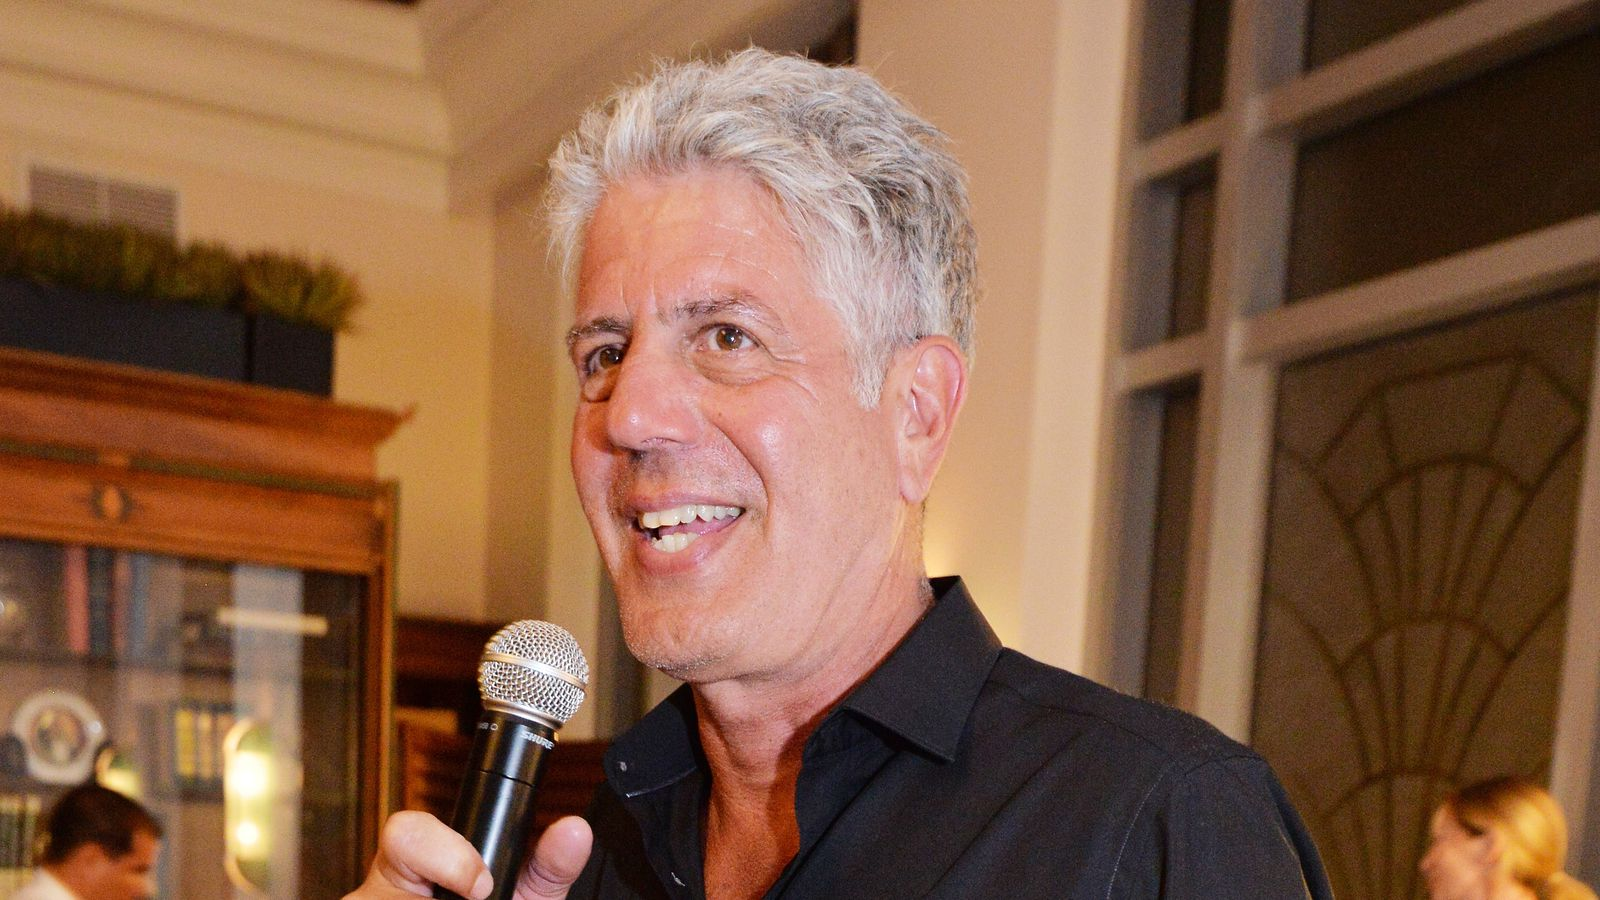 Anthony Bourdain Cook S Tour New Orleans